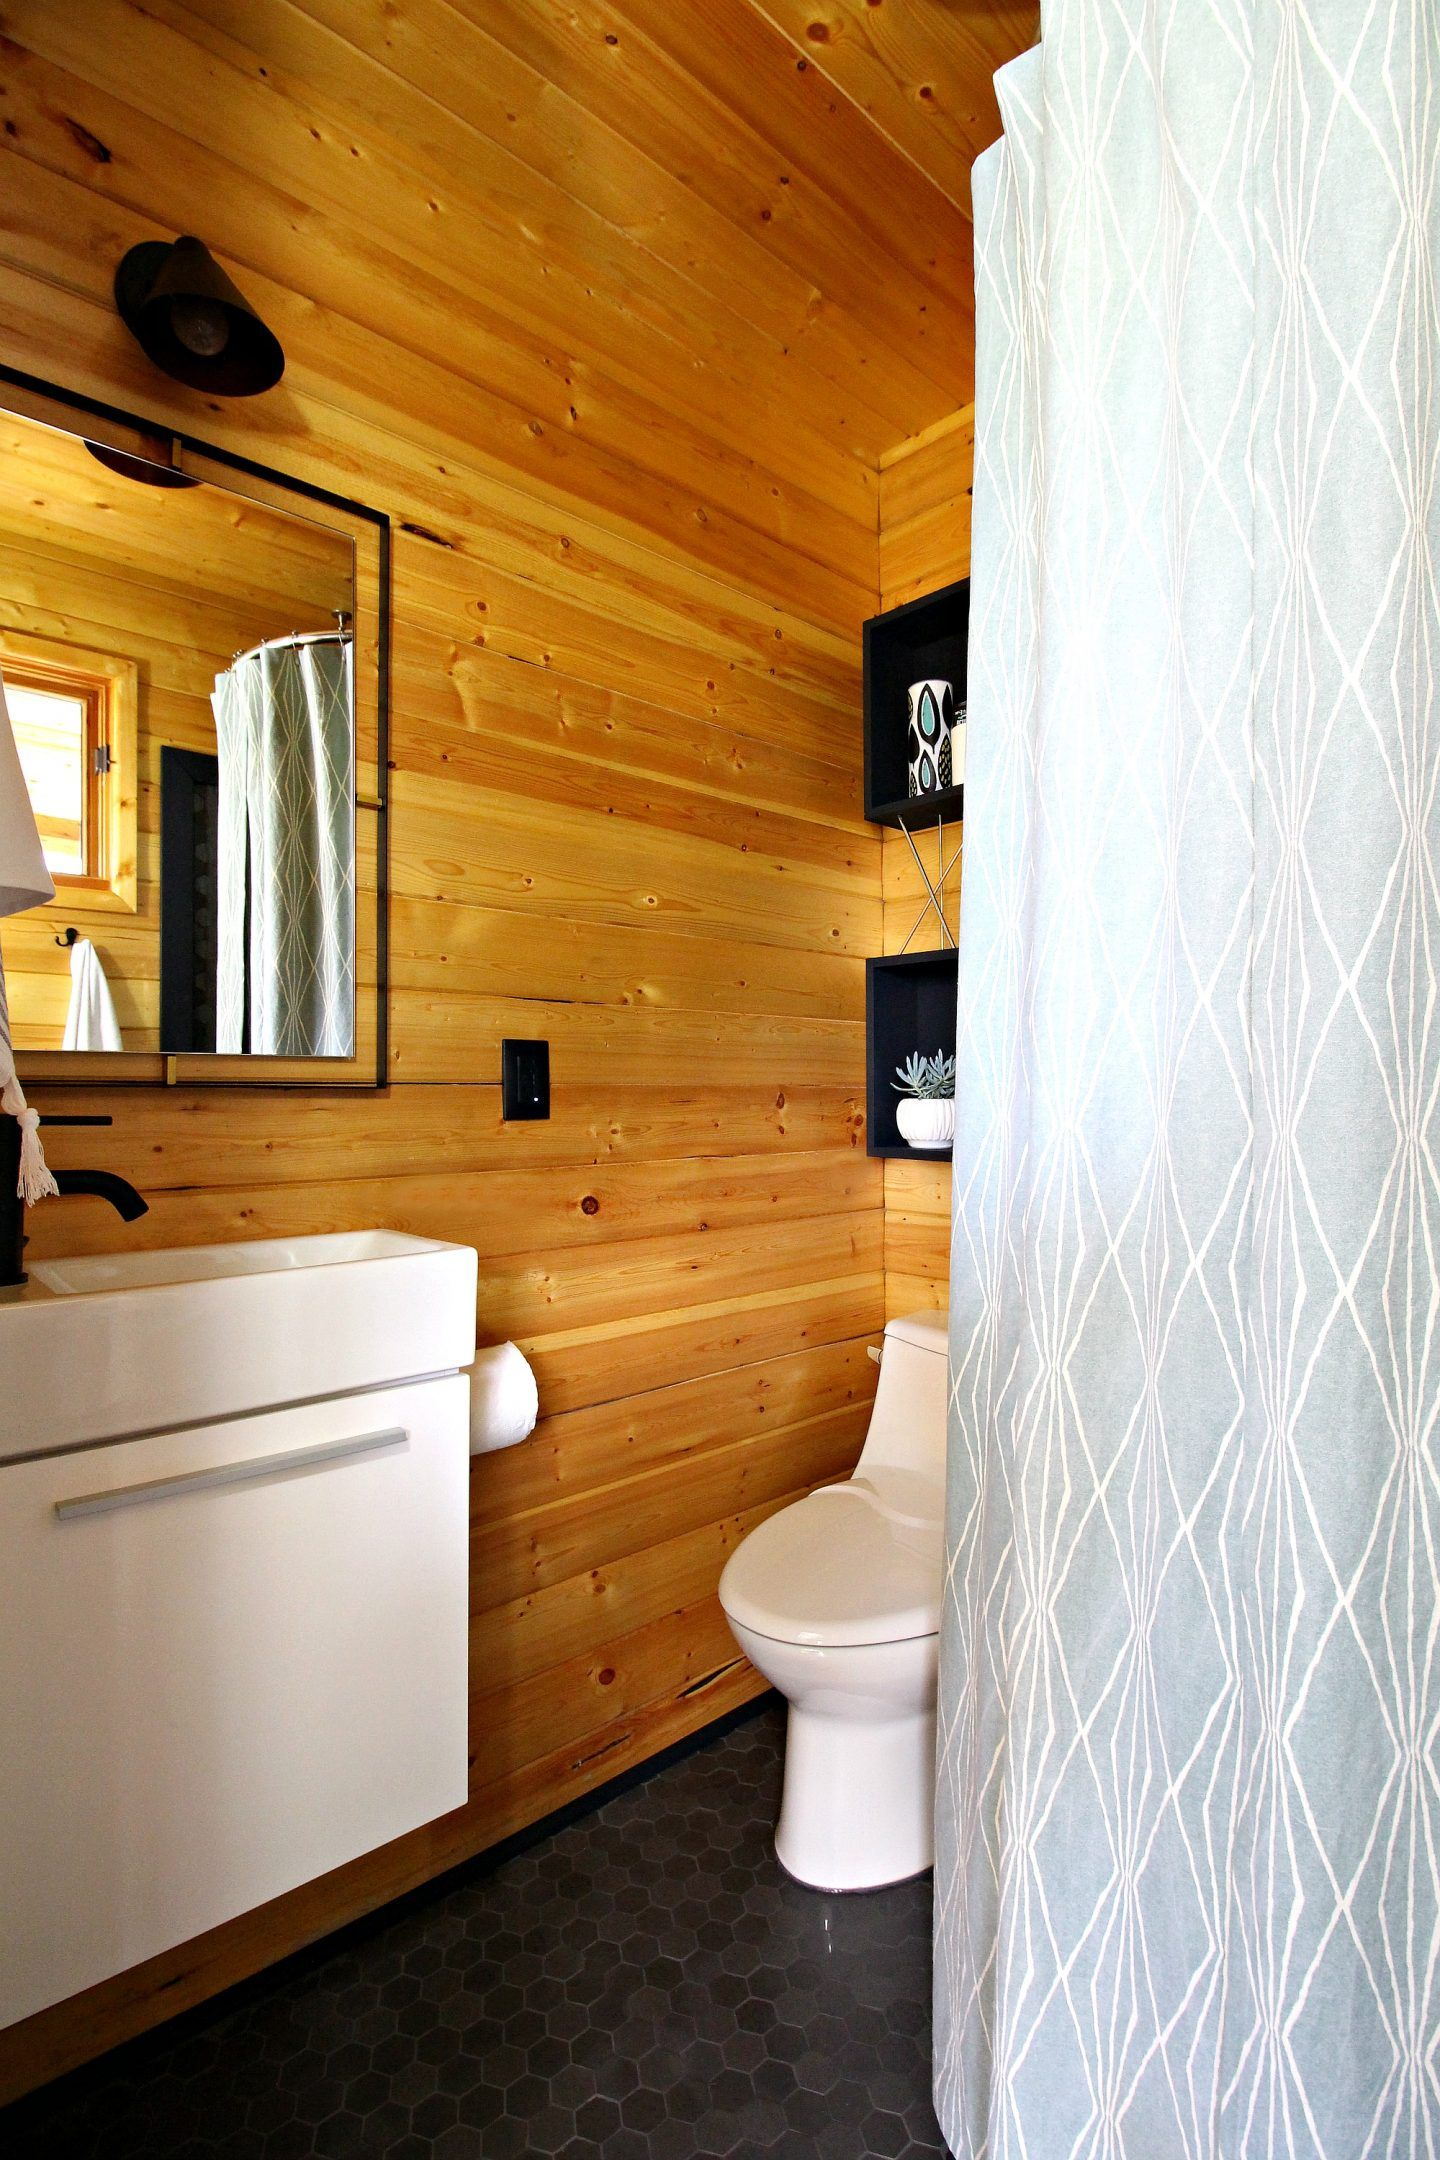 Modern Cabin Bunkie Bathroom Renovation in 2020 | Small ...